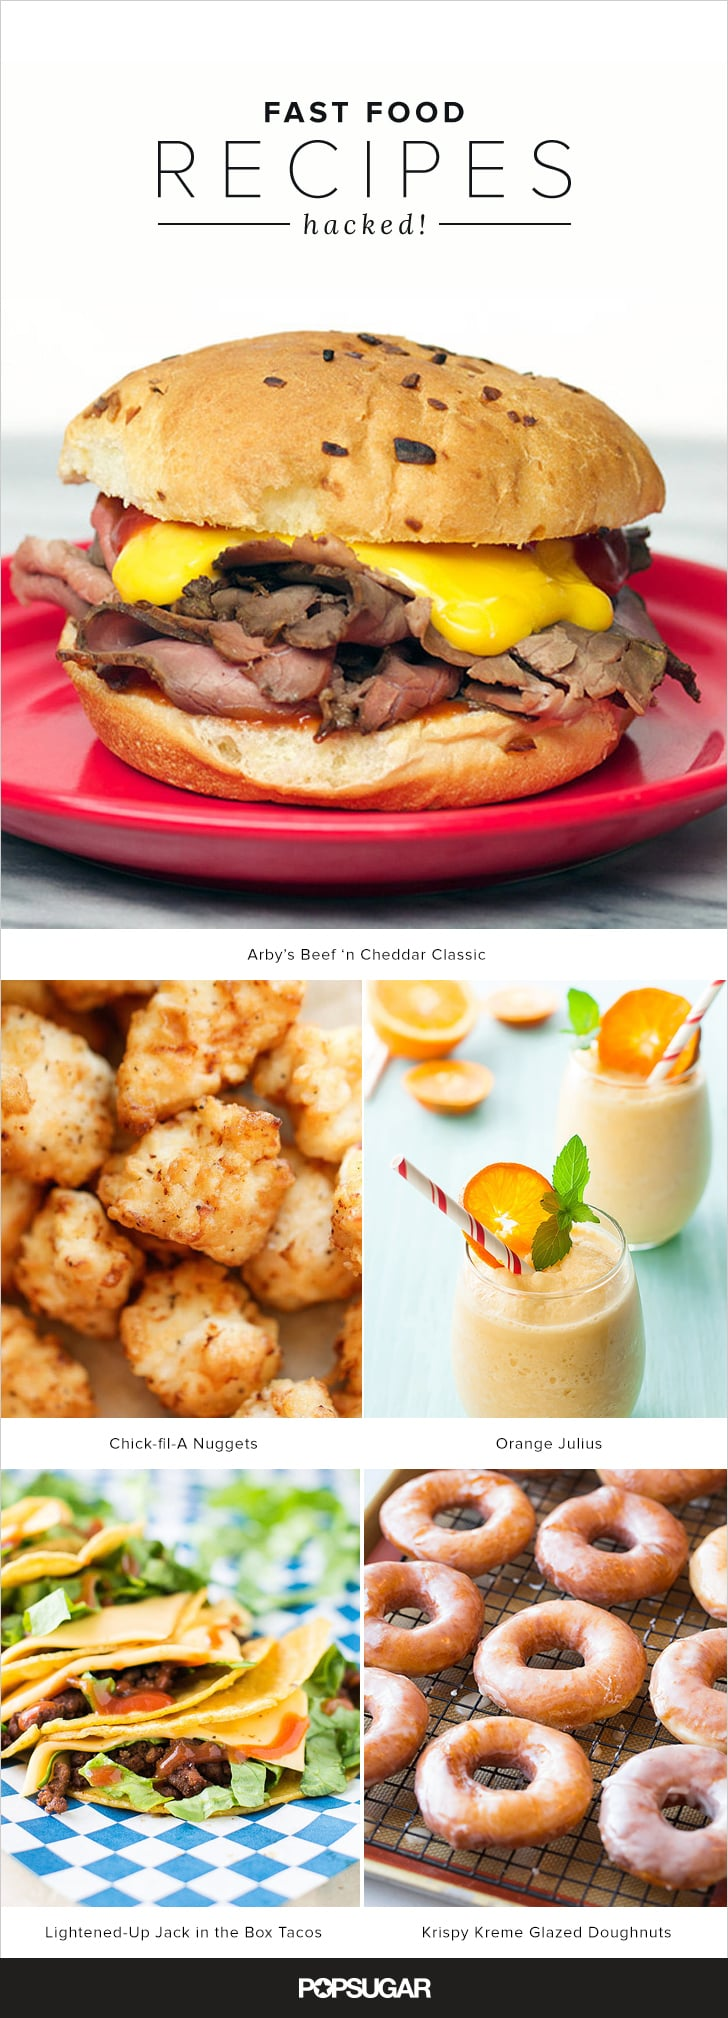 27 Fast Food Recipes — Hacked!